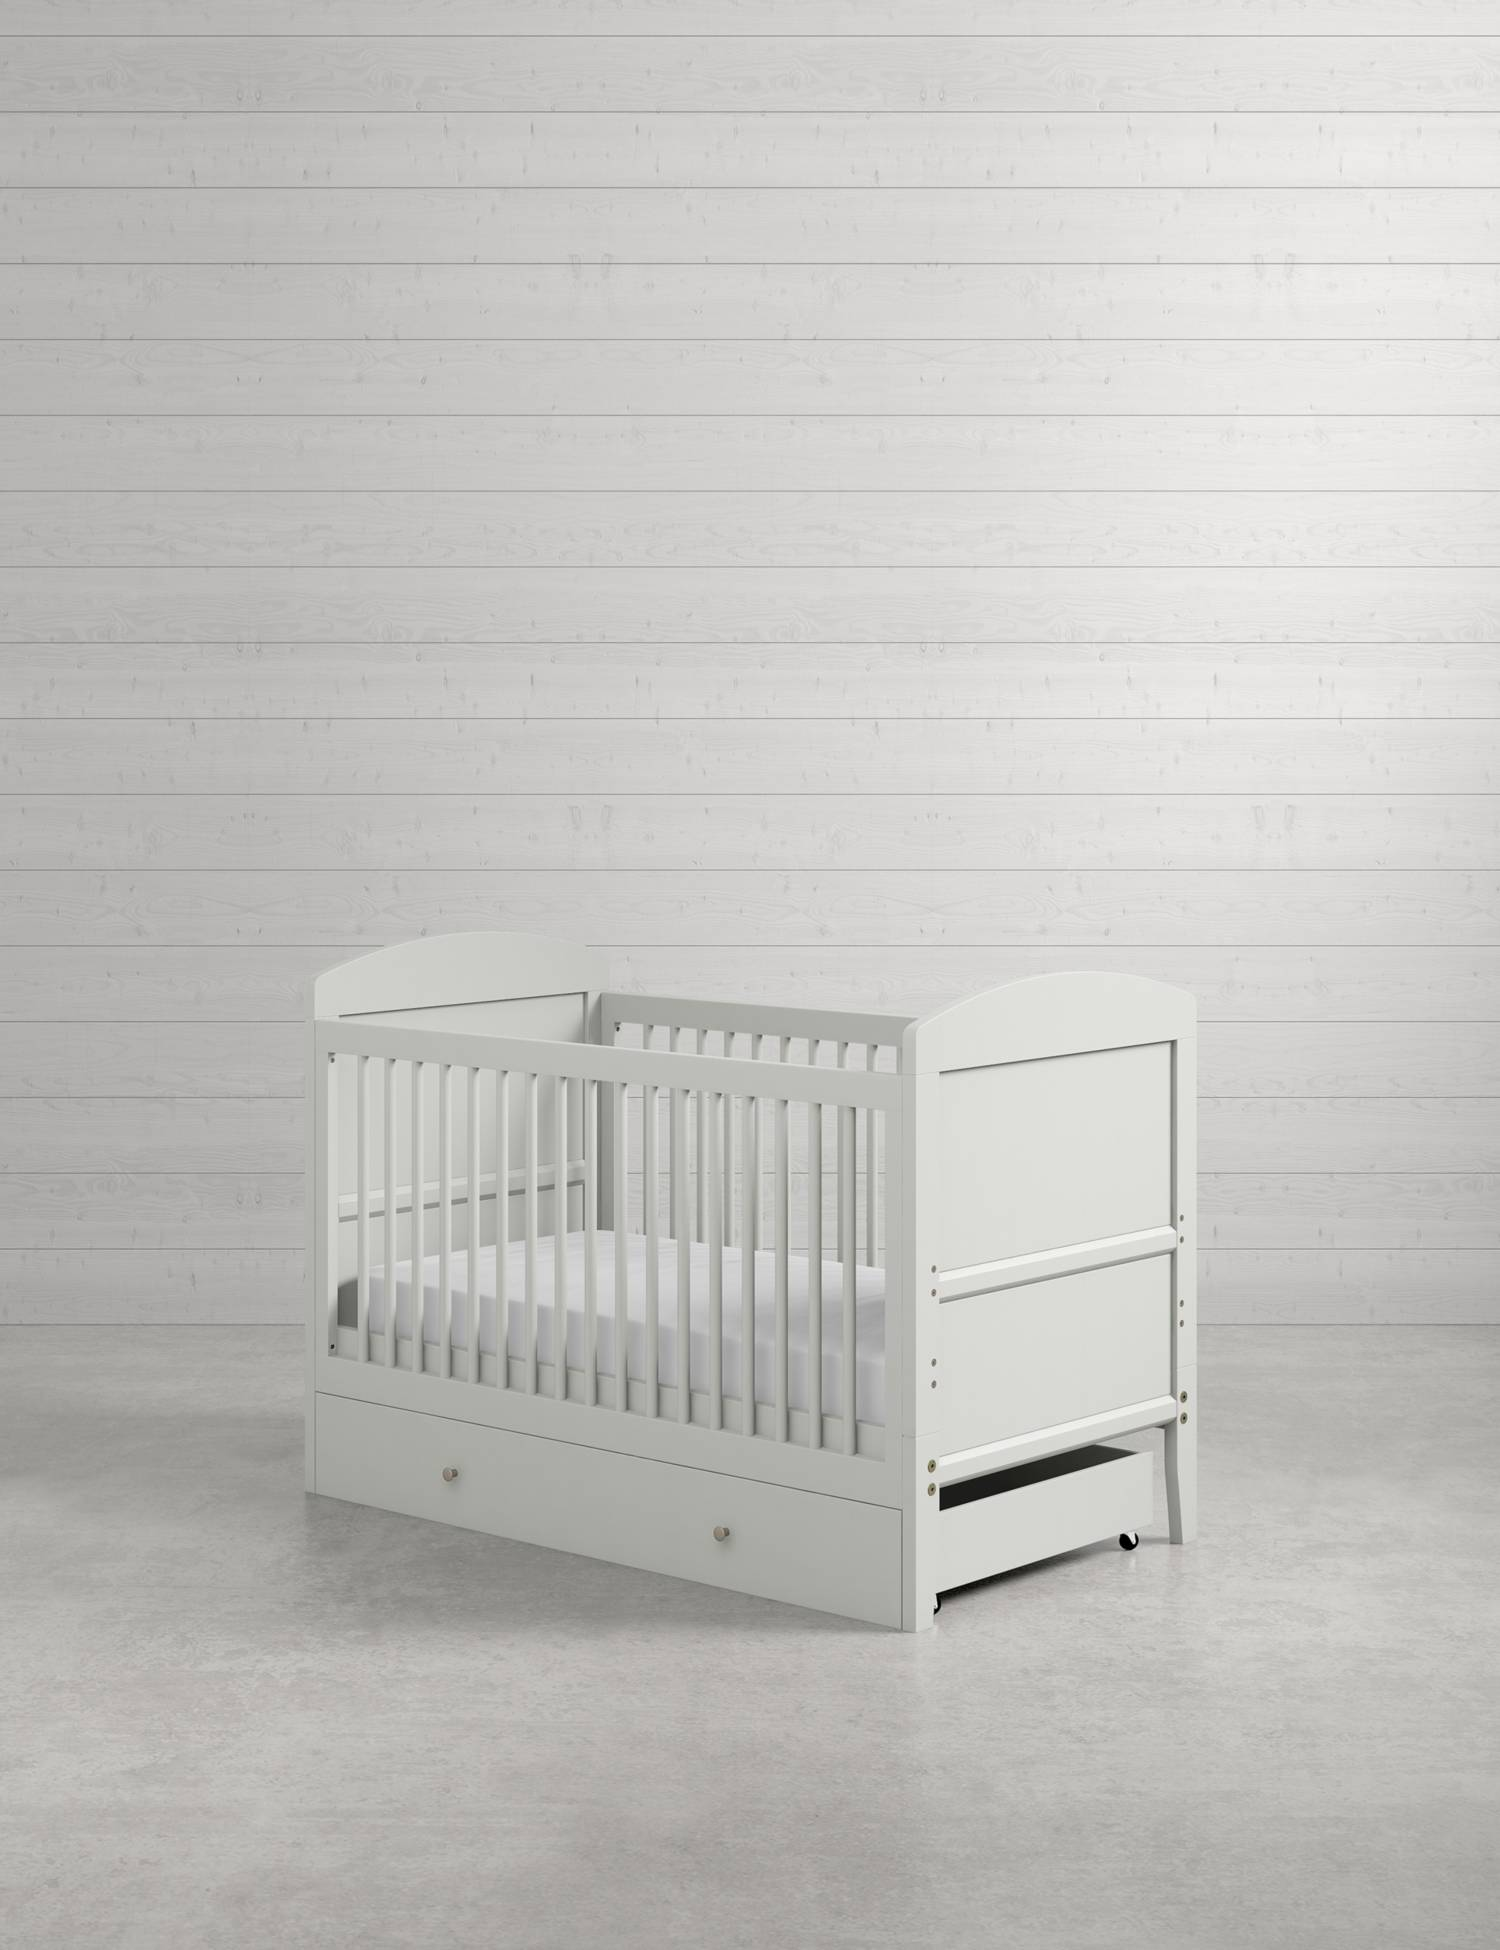 20% off Nursery & CHILDREN Furniture - We know that when you're getting ready to have a baby, one of the most exciting parts of the process is decorating the nursery and choosing the perfect baby furniture. Discover perfect durable and safe nursery furniture for your home from M & S today and enjoy 20% off when you buy 2 furniture pieces.